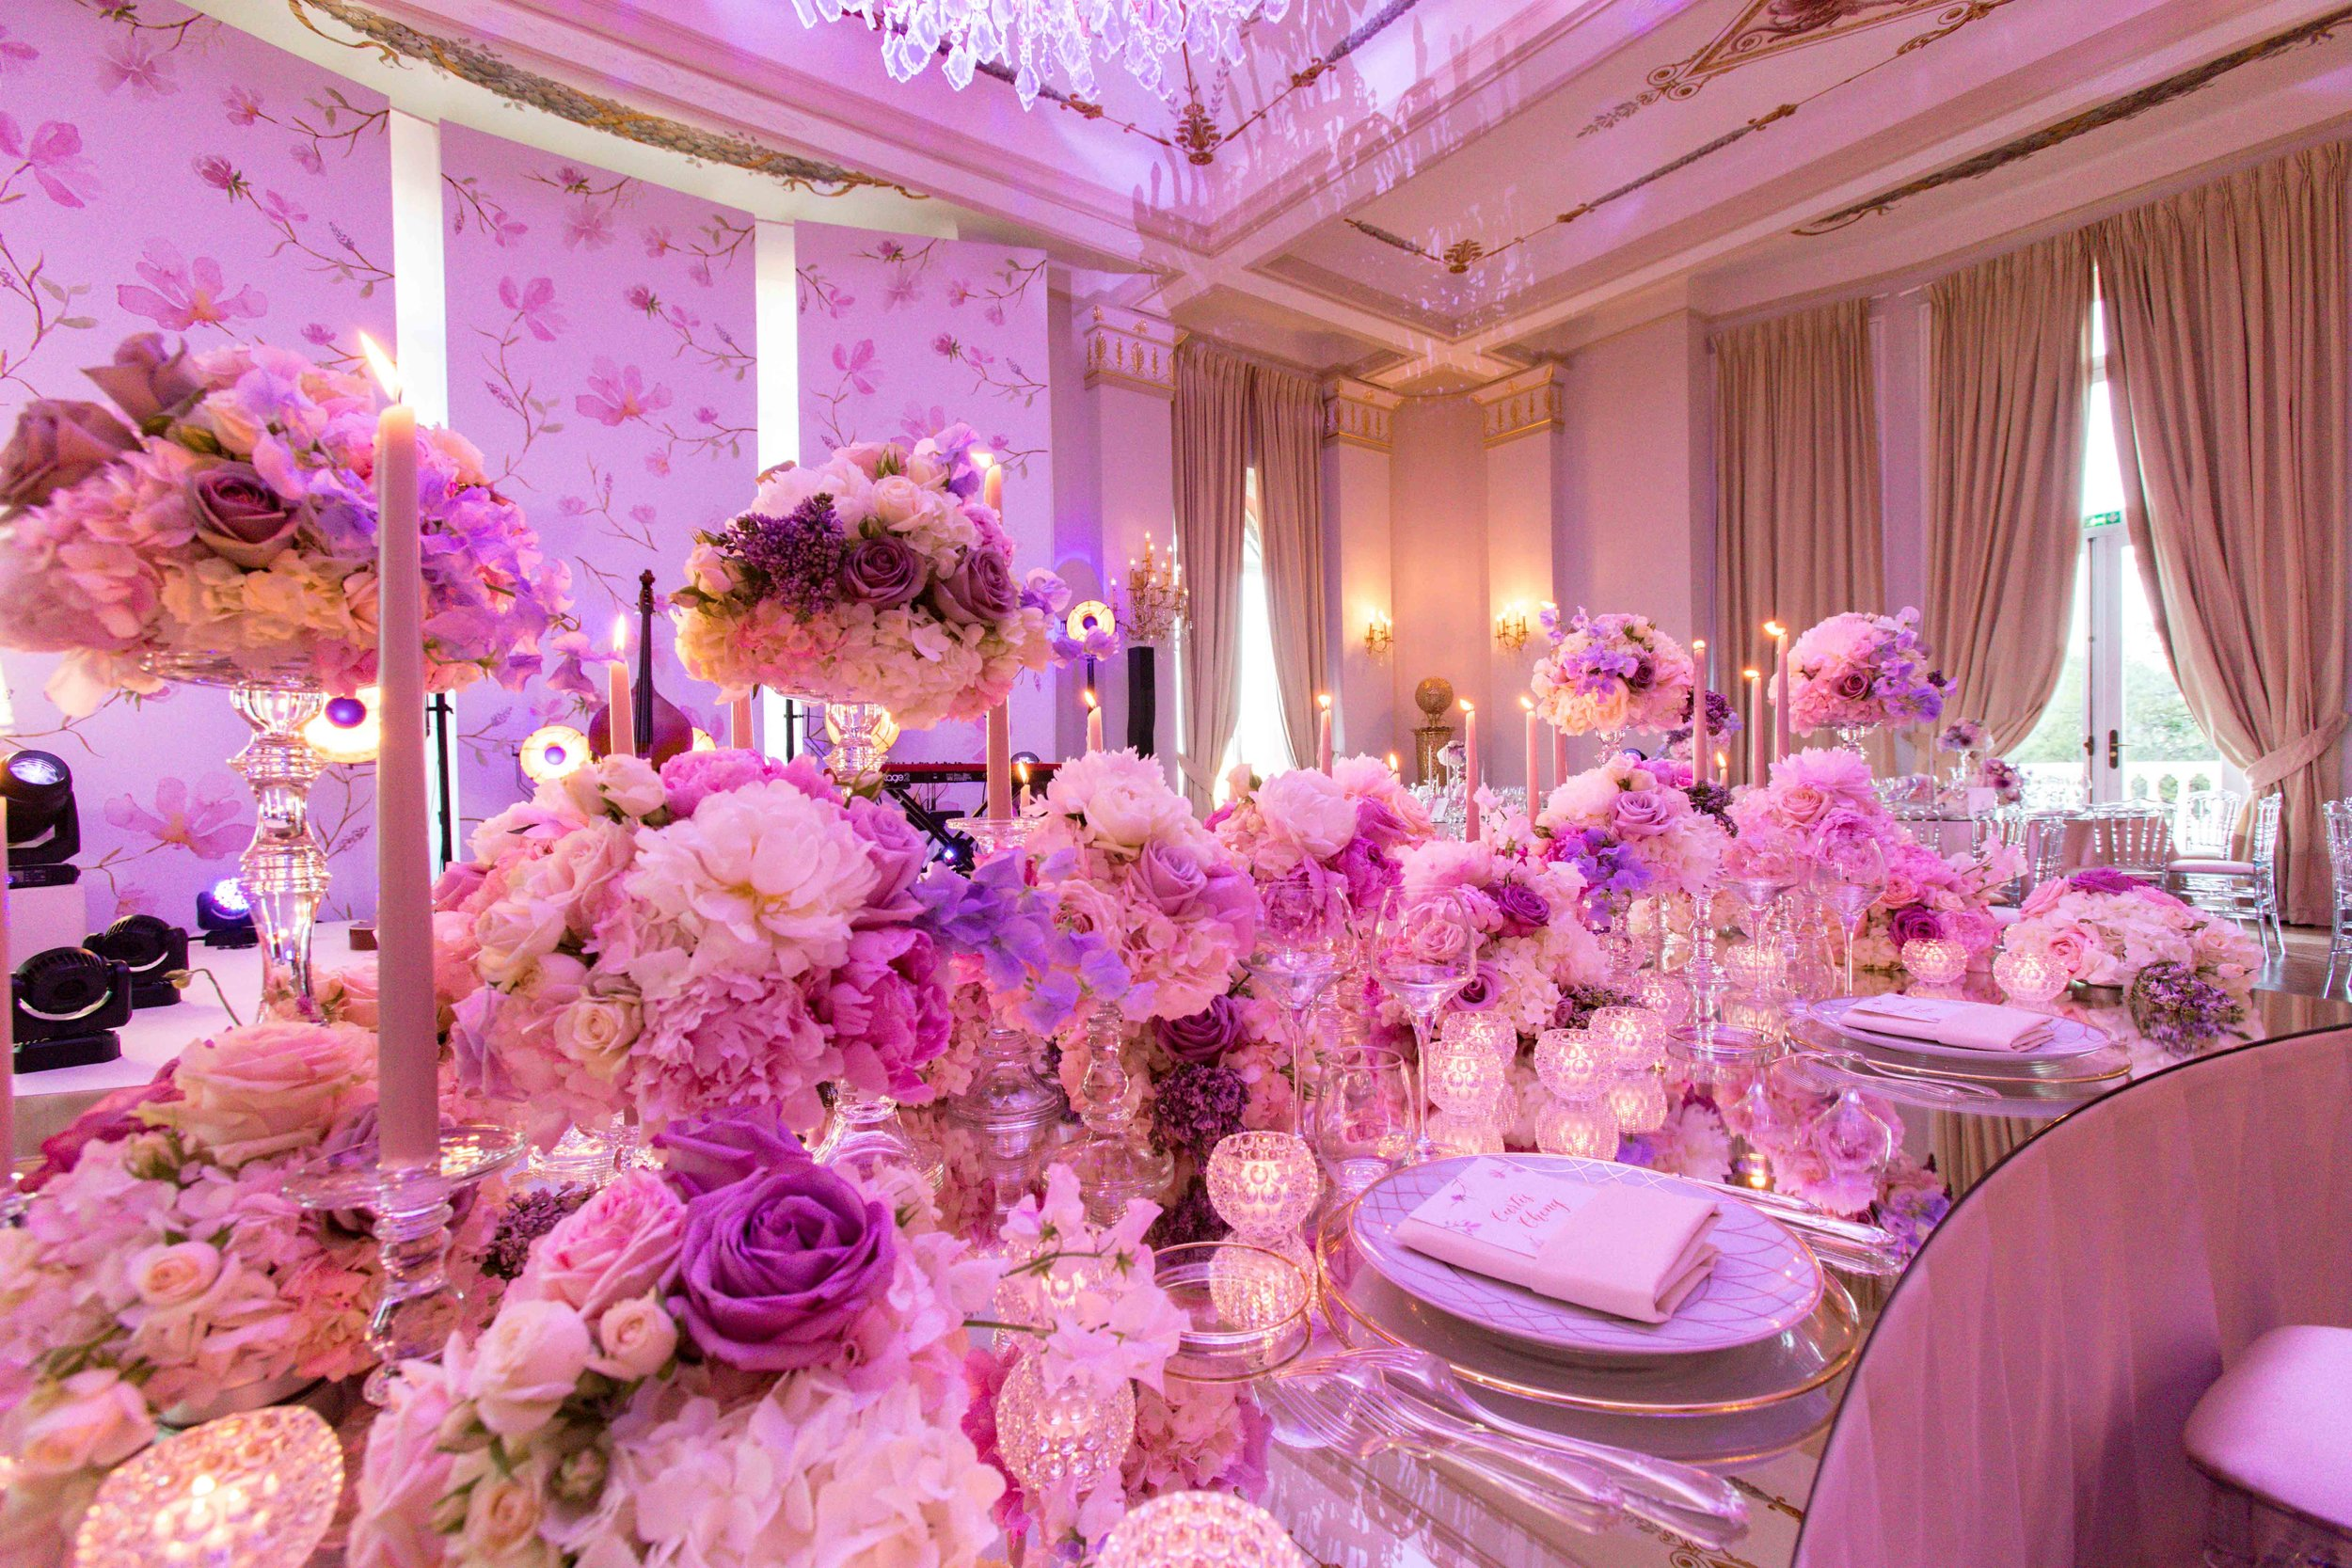 Le Beauvallon wedding dinner ballroom 1.jpg